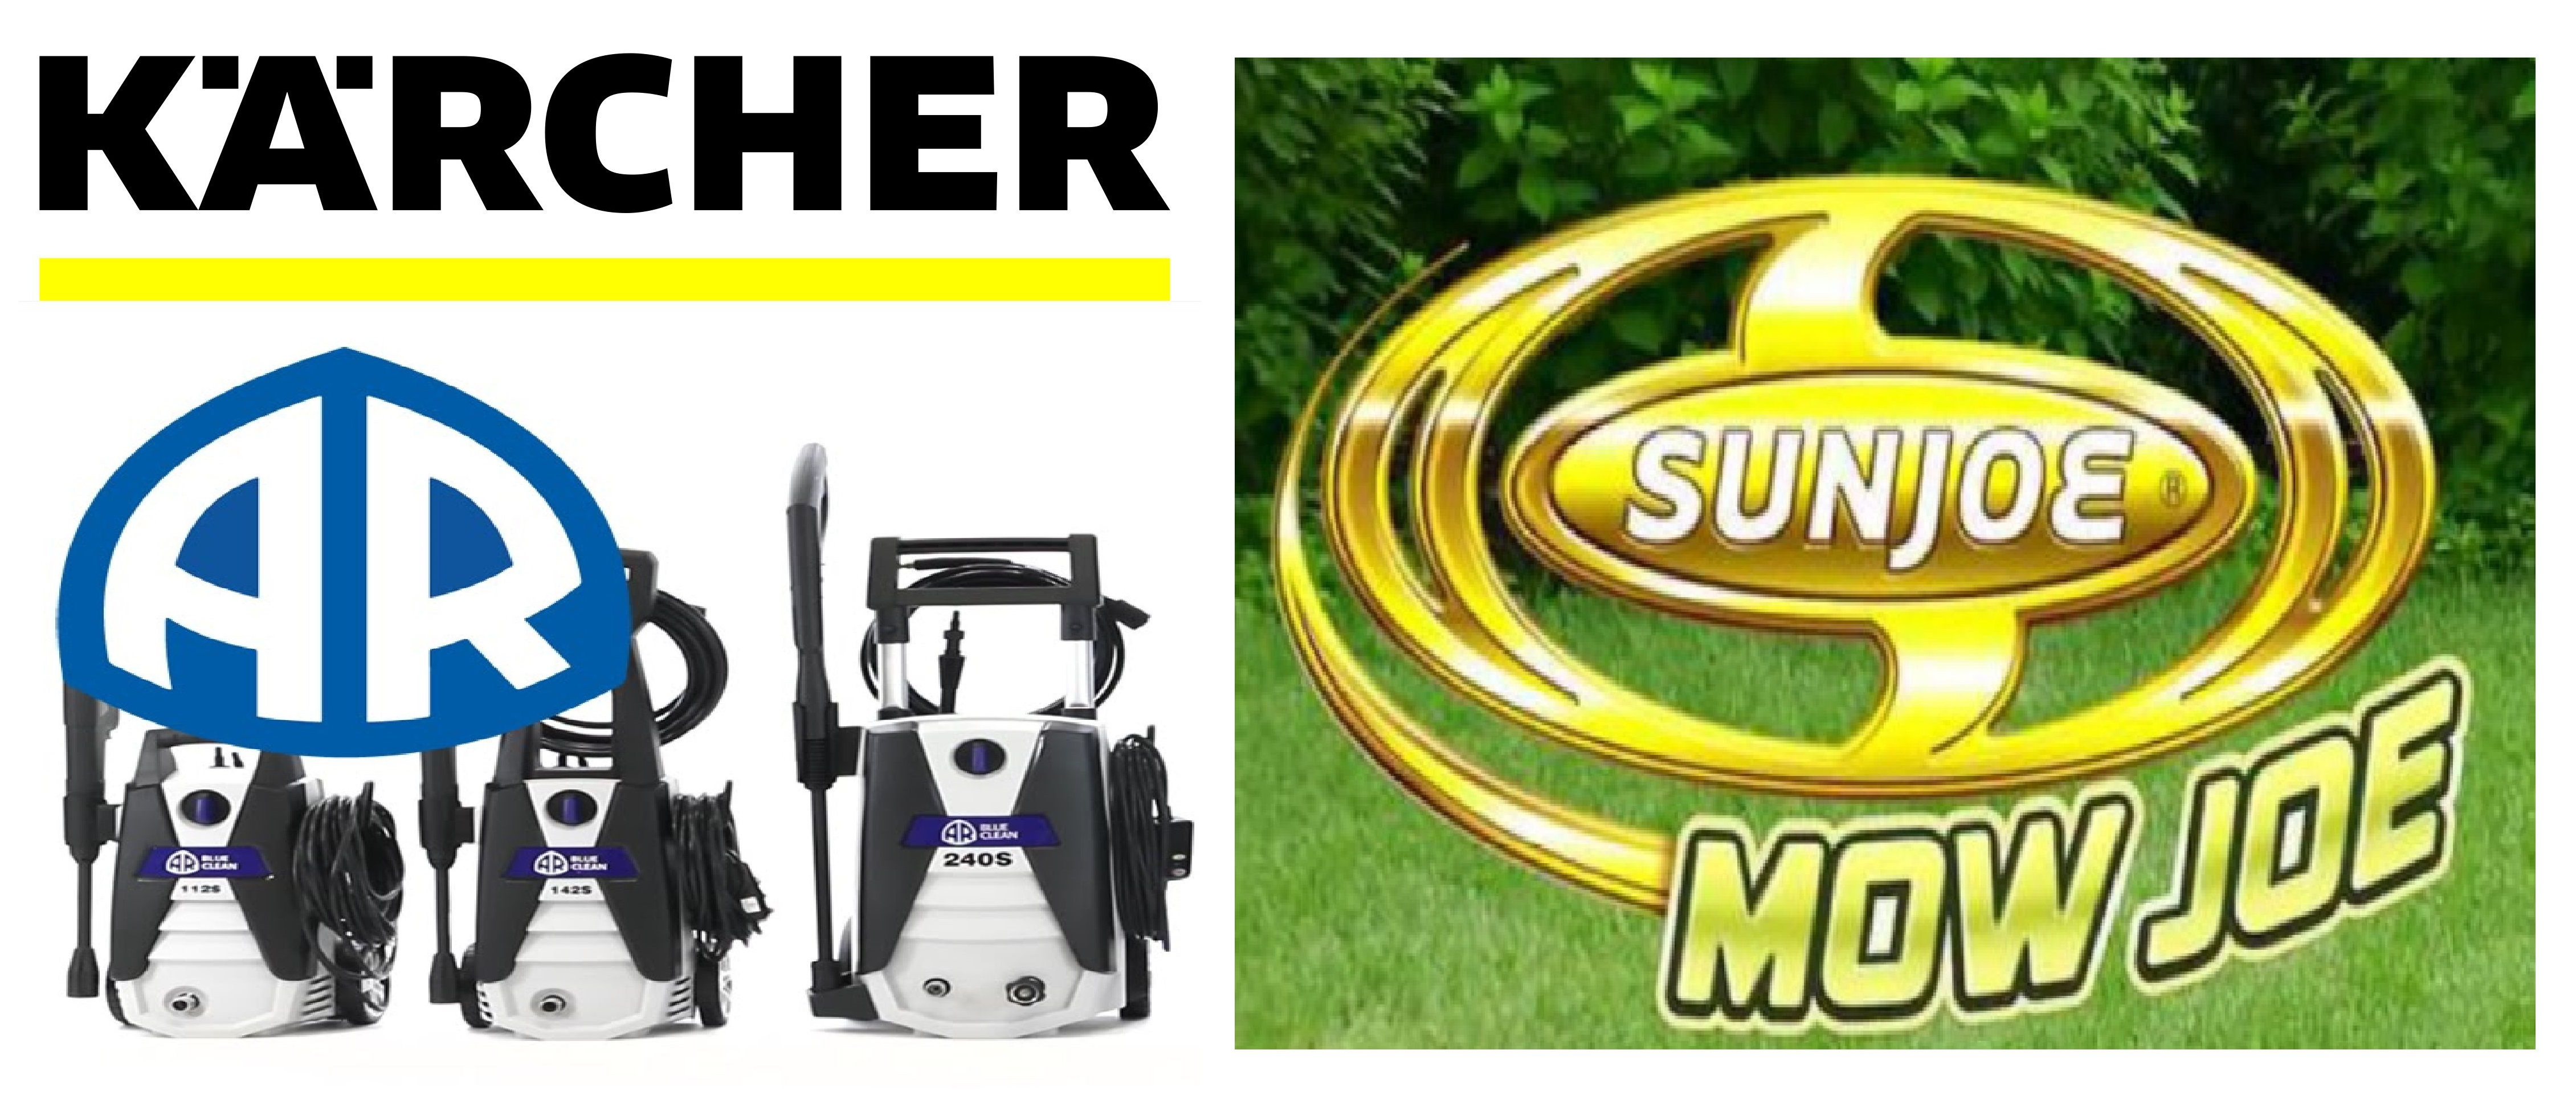 Top 3 Best Electric Pressure Washer Brands